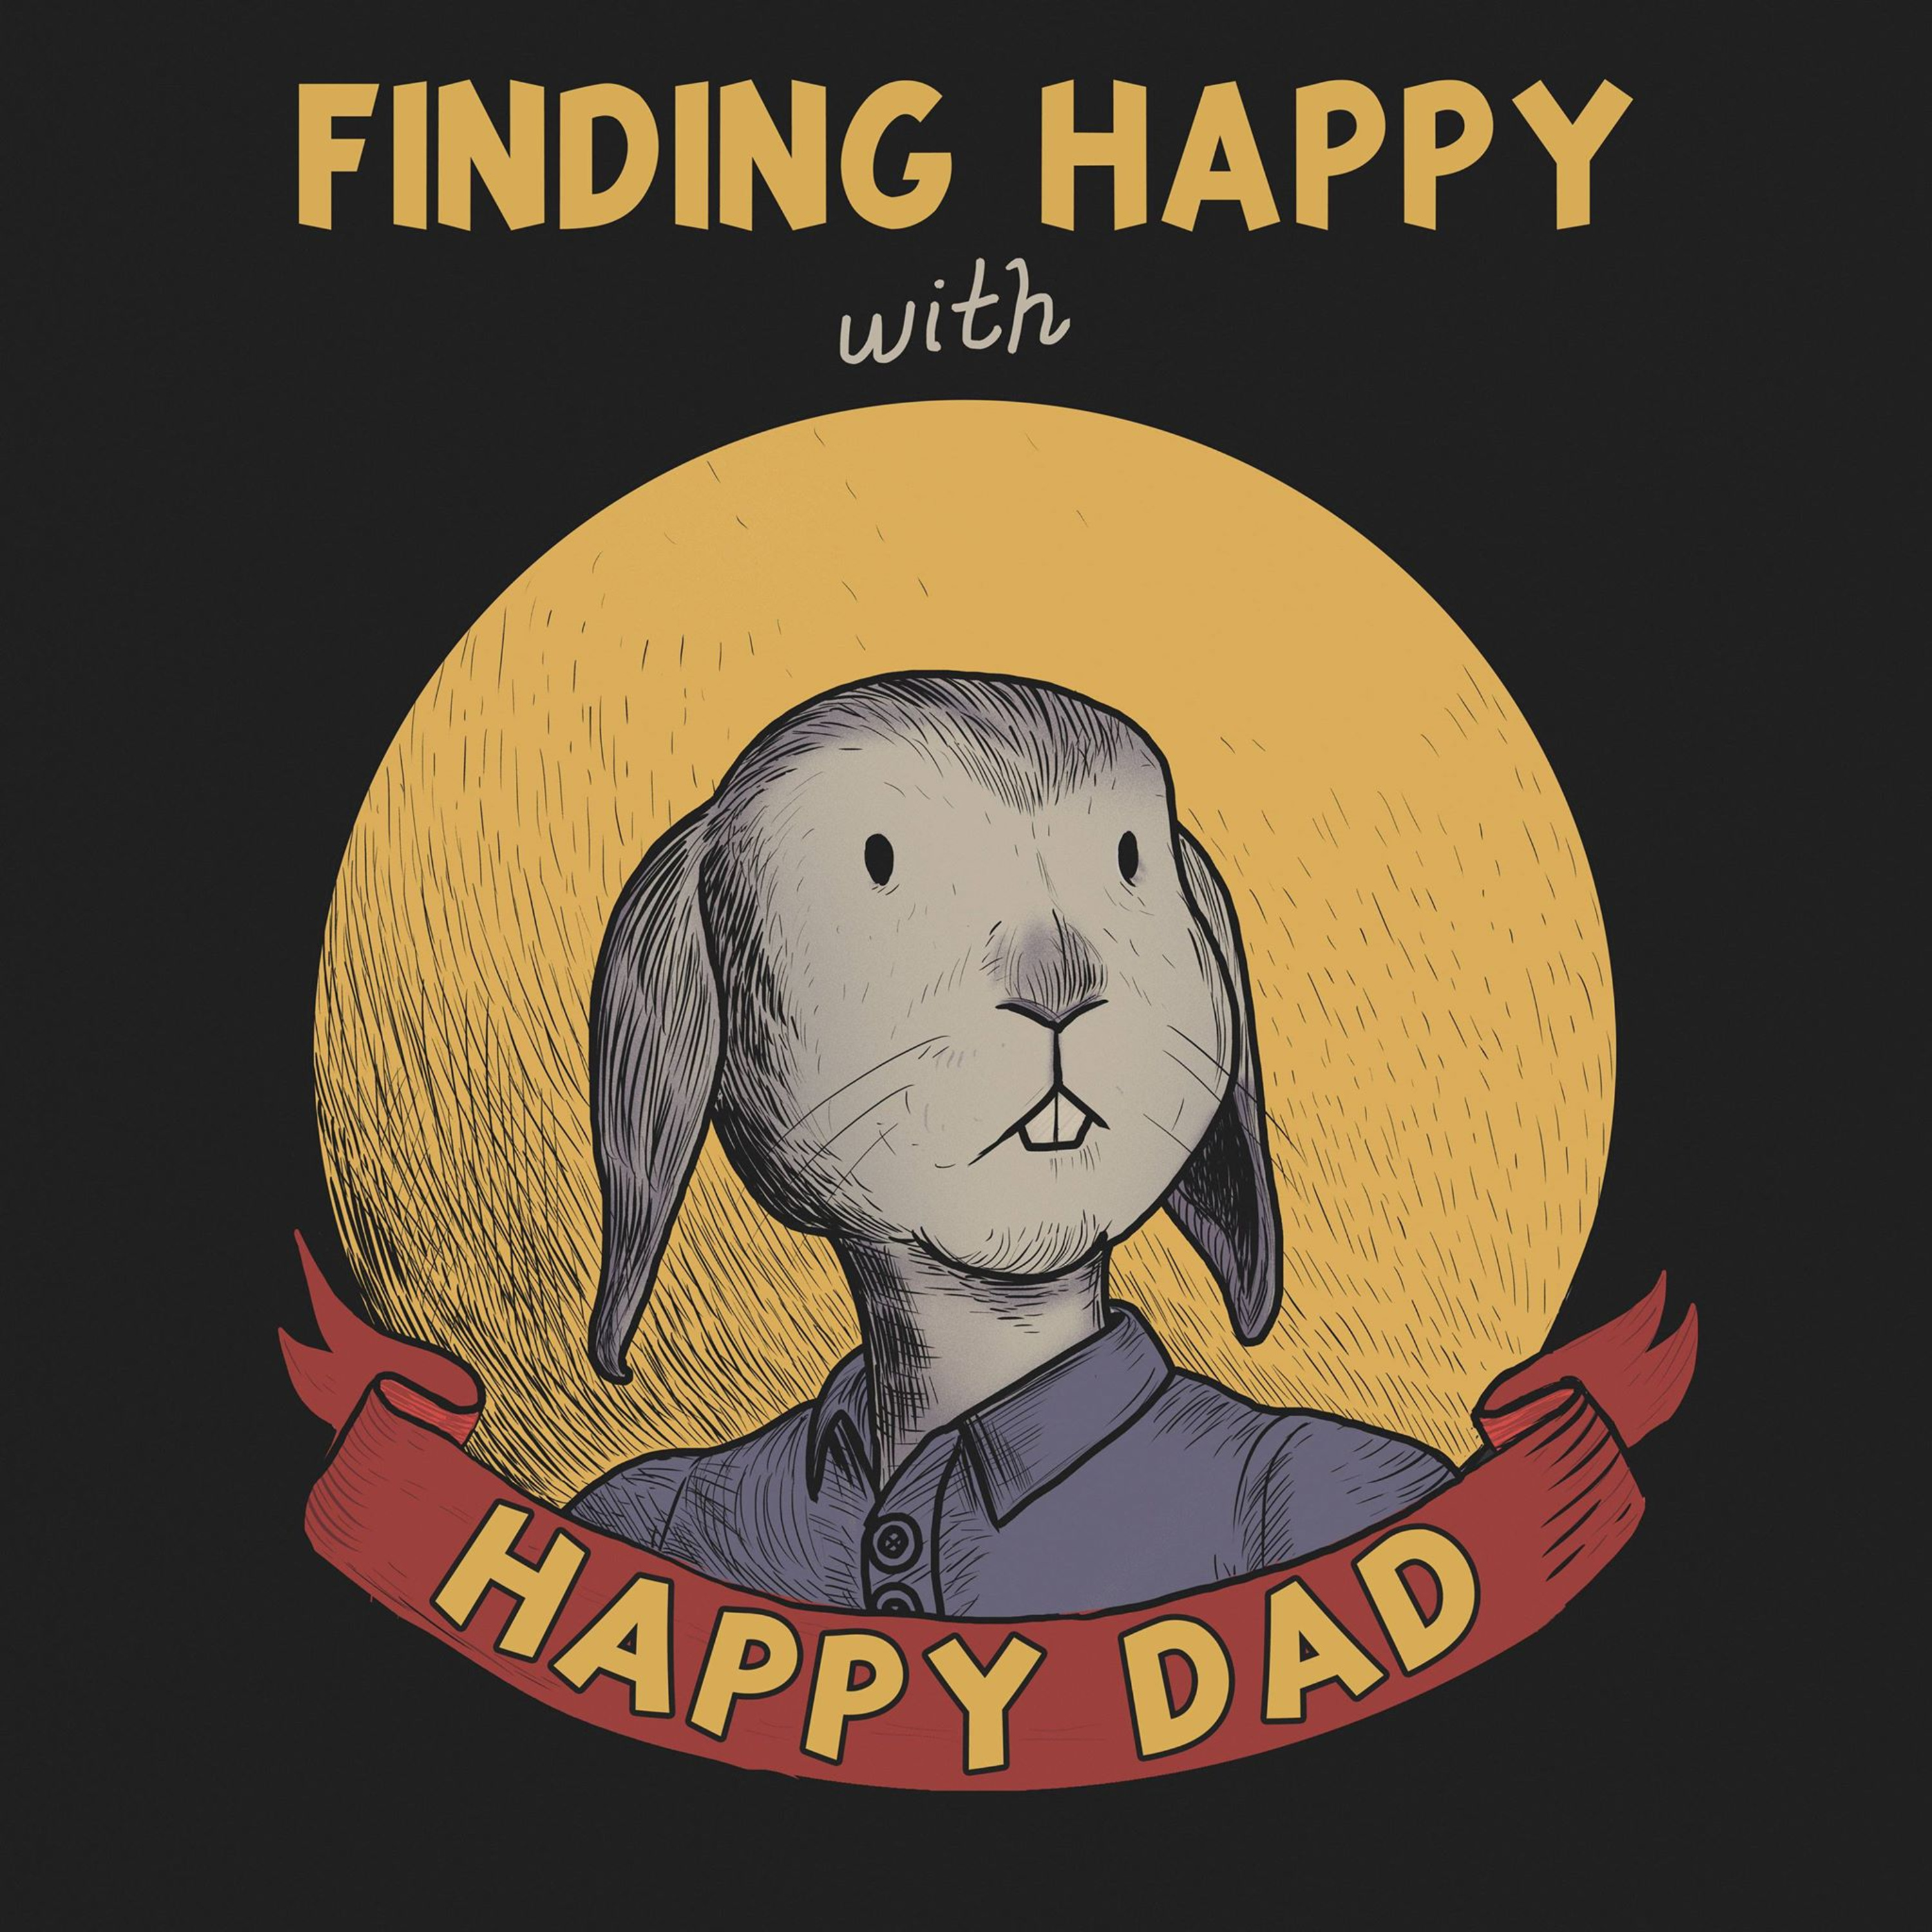 A Snippet from The New Podcast: Finding Happy with Happy Dad